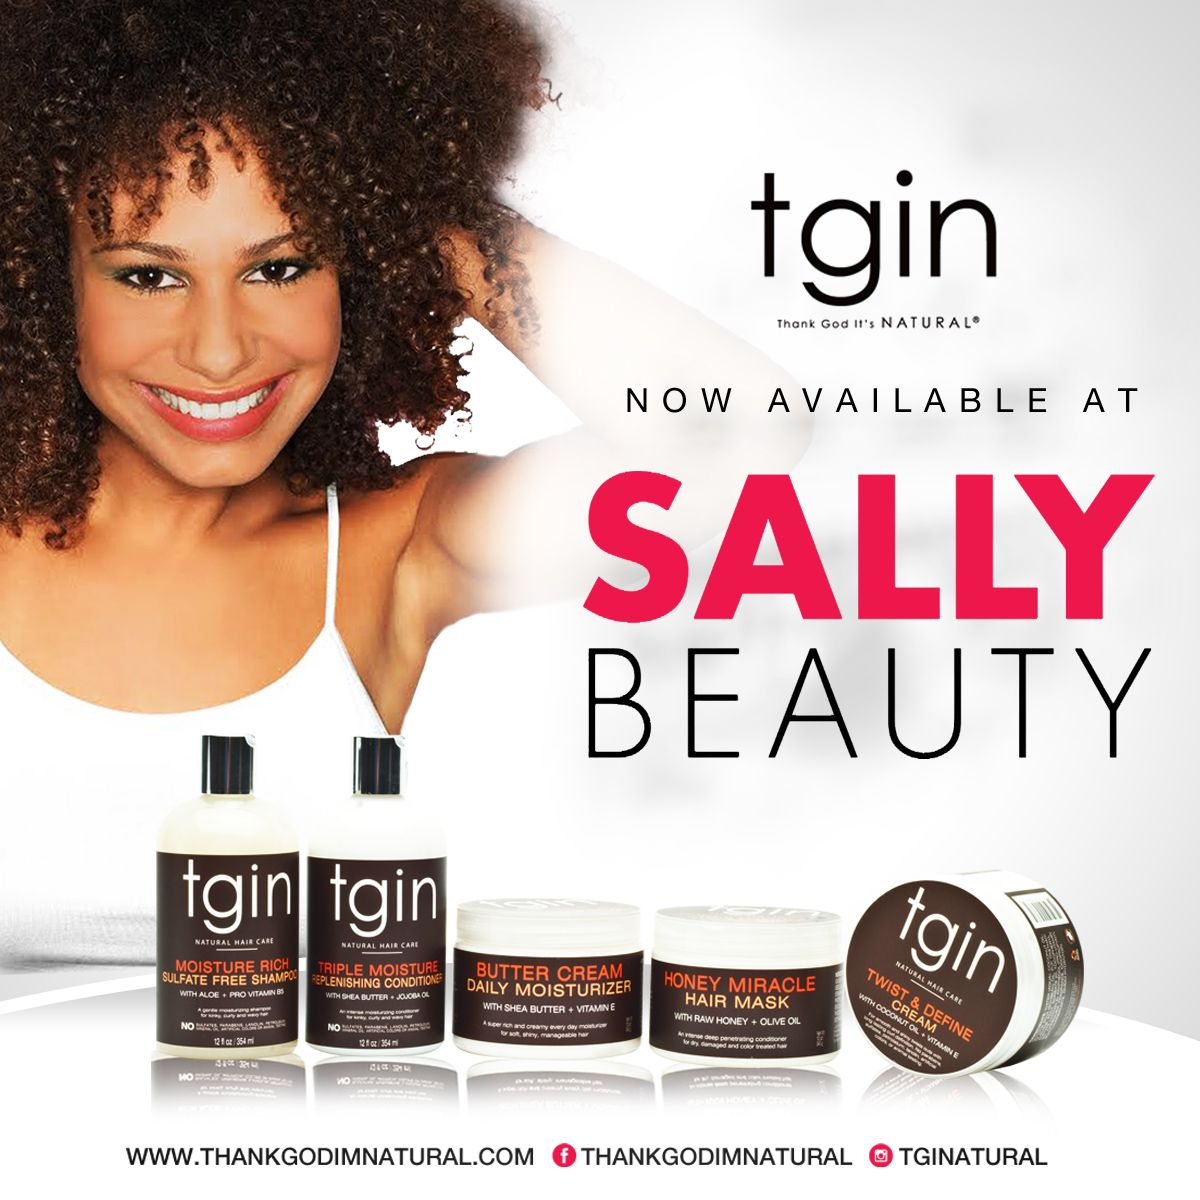 tgin Natural Hair Products for Dry Hair Now in 500+ Sally's Beauty Supply Stores | tgin